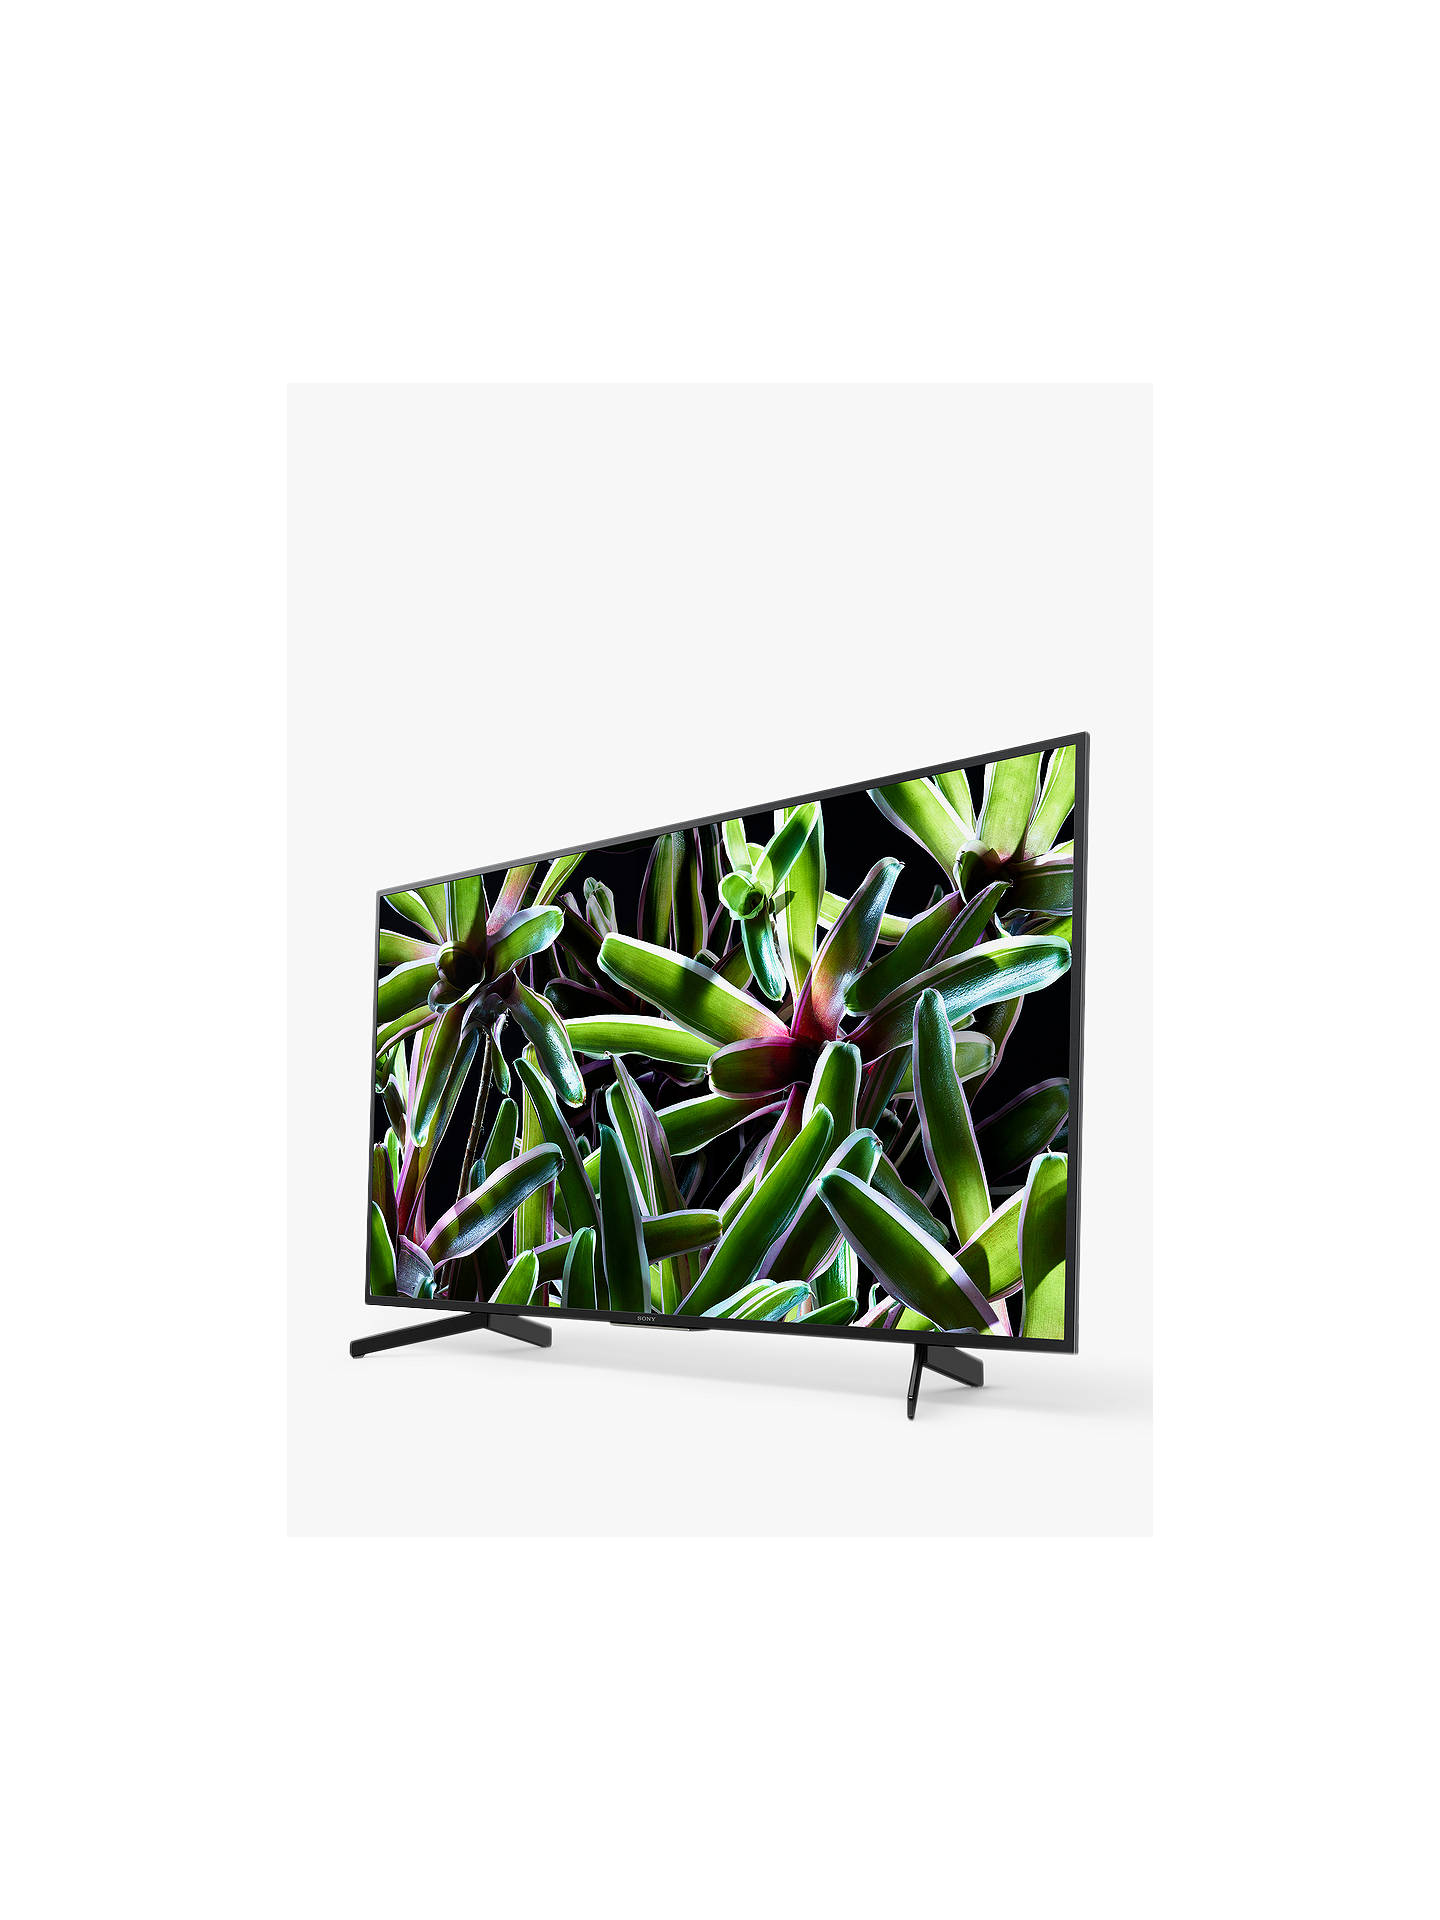 "Buy Sony Bravia KD55XG7093 (2019) LED HDR 4K Ultra HD Smart TV, 55"" with Freeview Play, Black Online at johnlewis.com"